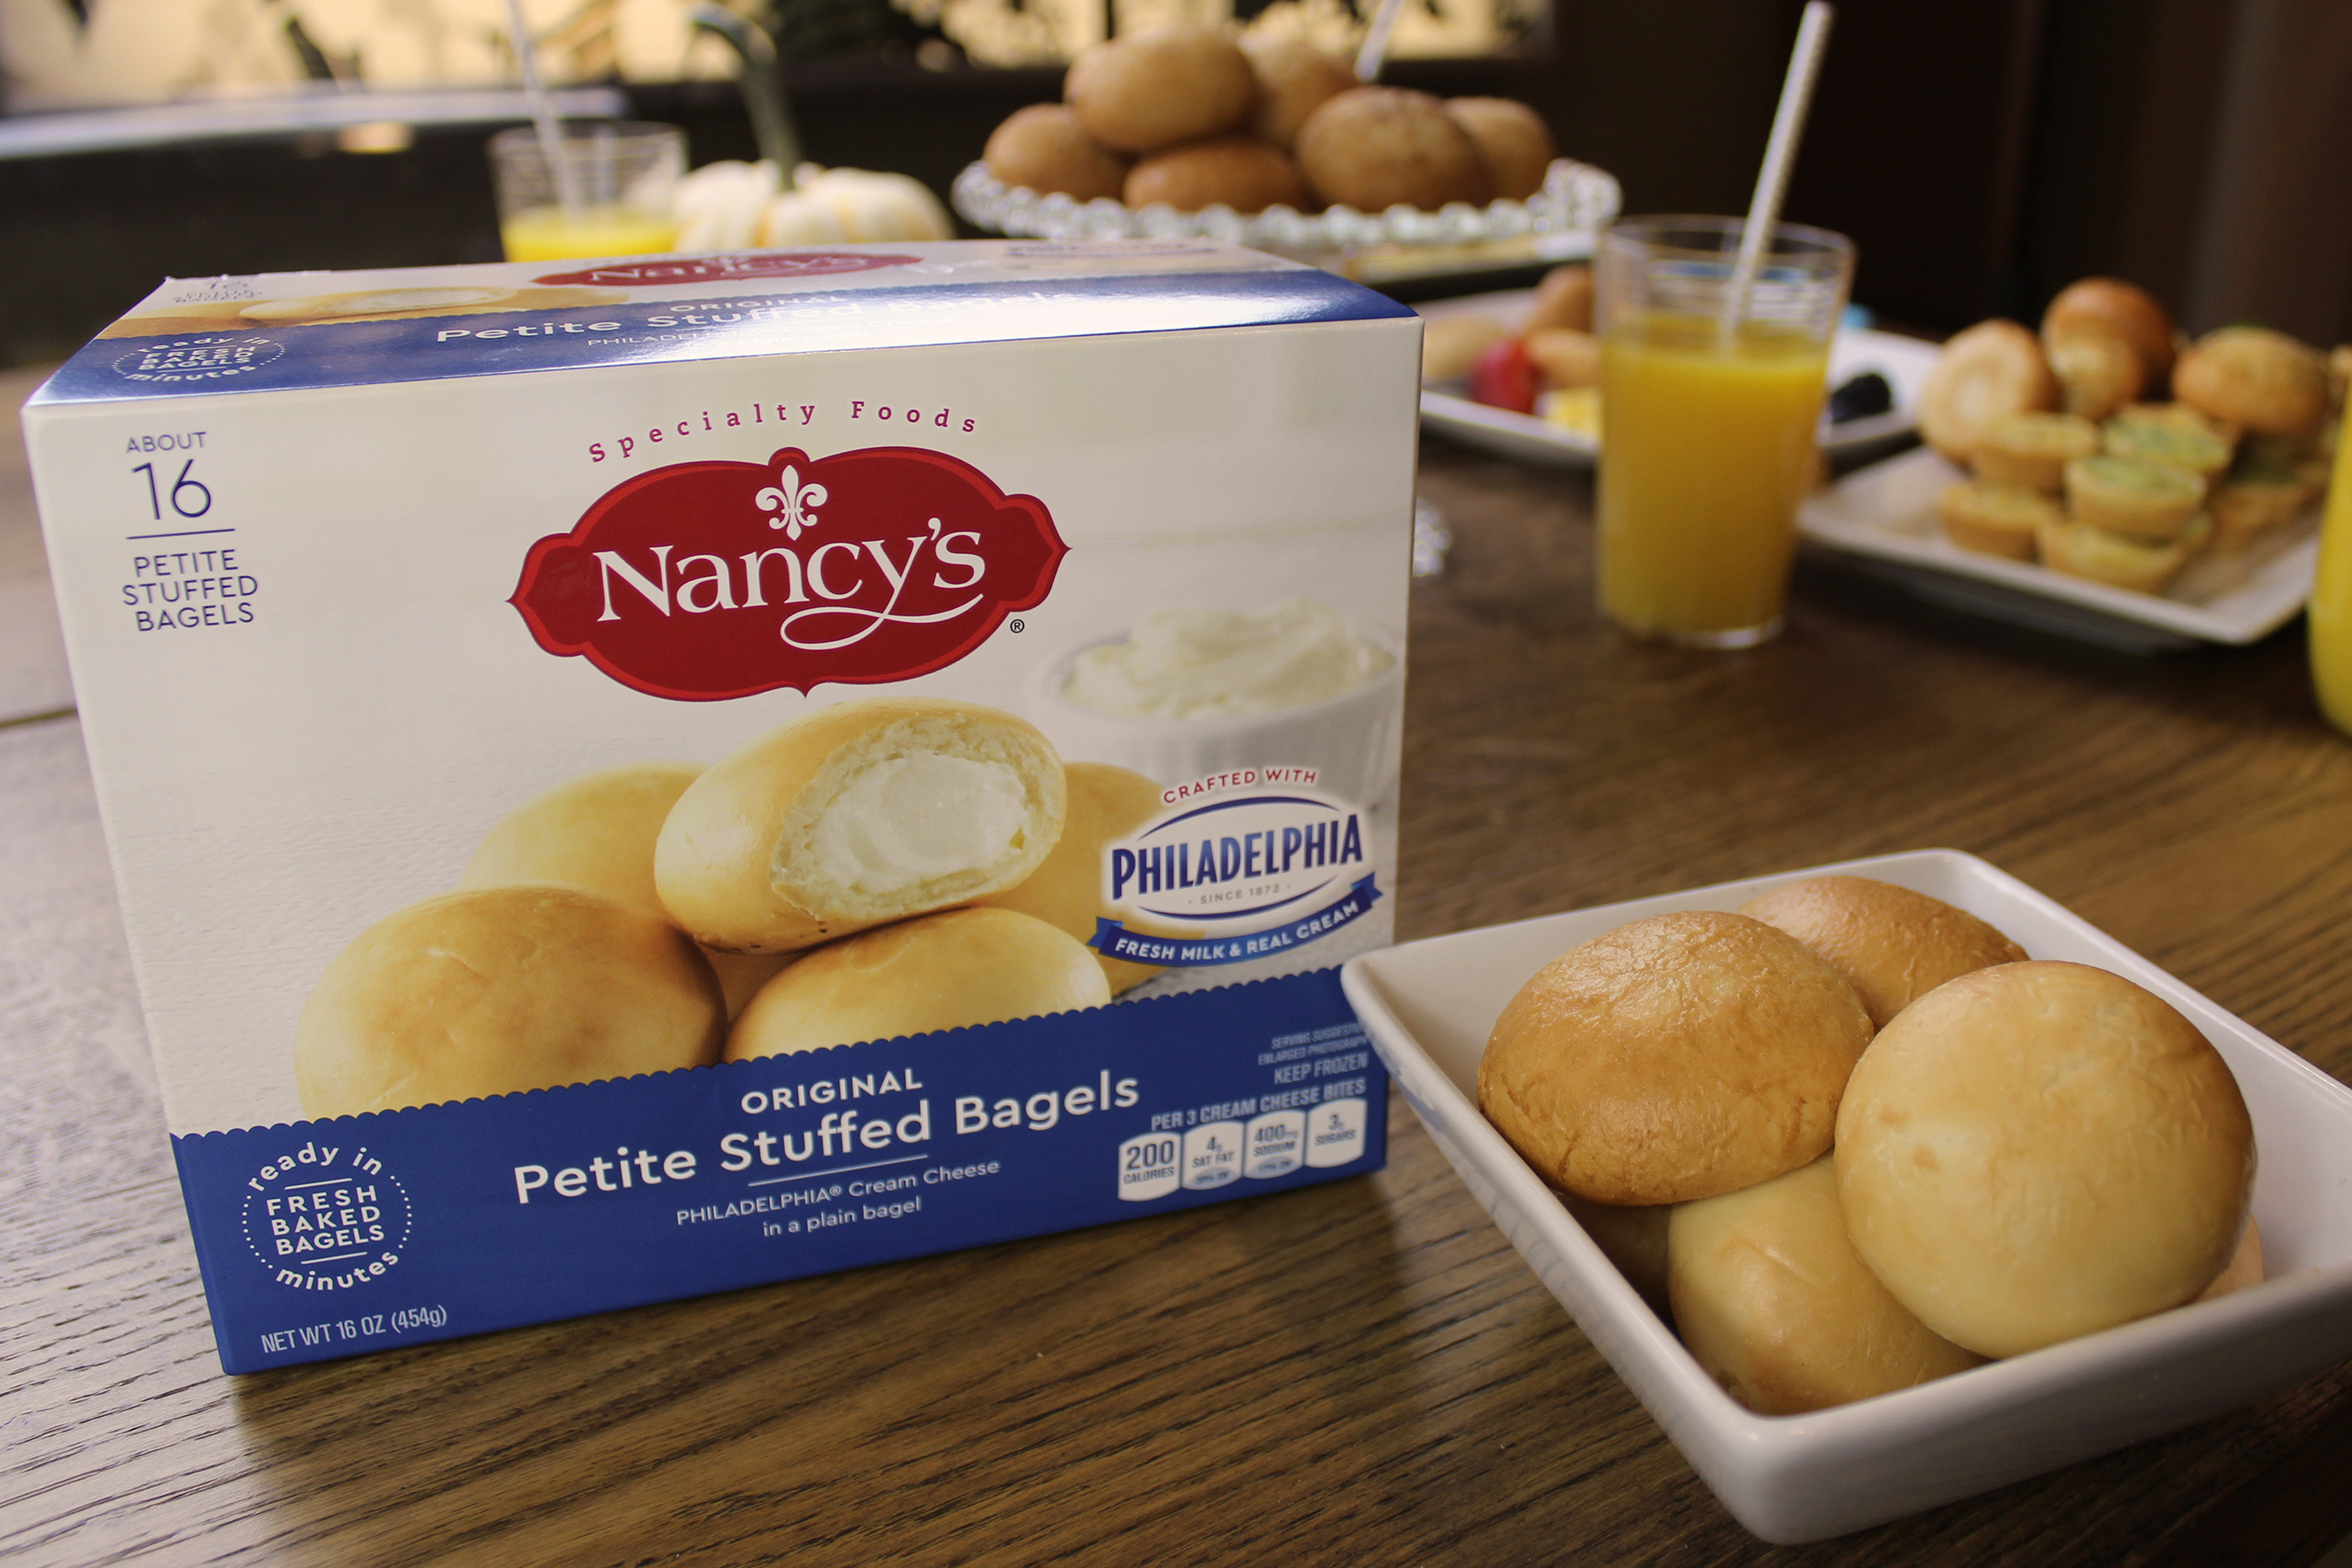 Keep it classic with Nancy's Petite Stuffed Original Bagels made with PHILADELPHIA Cream Cheese in a plain bagel